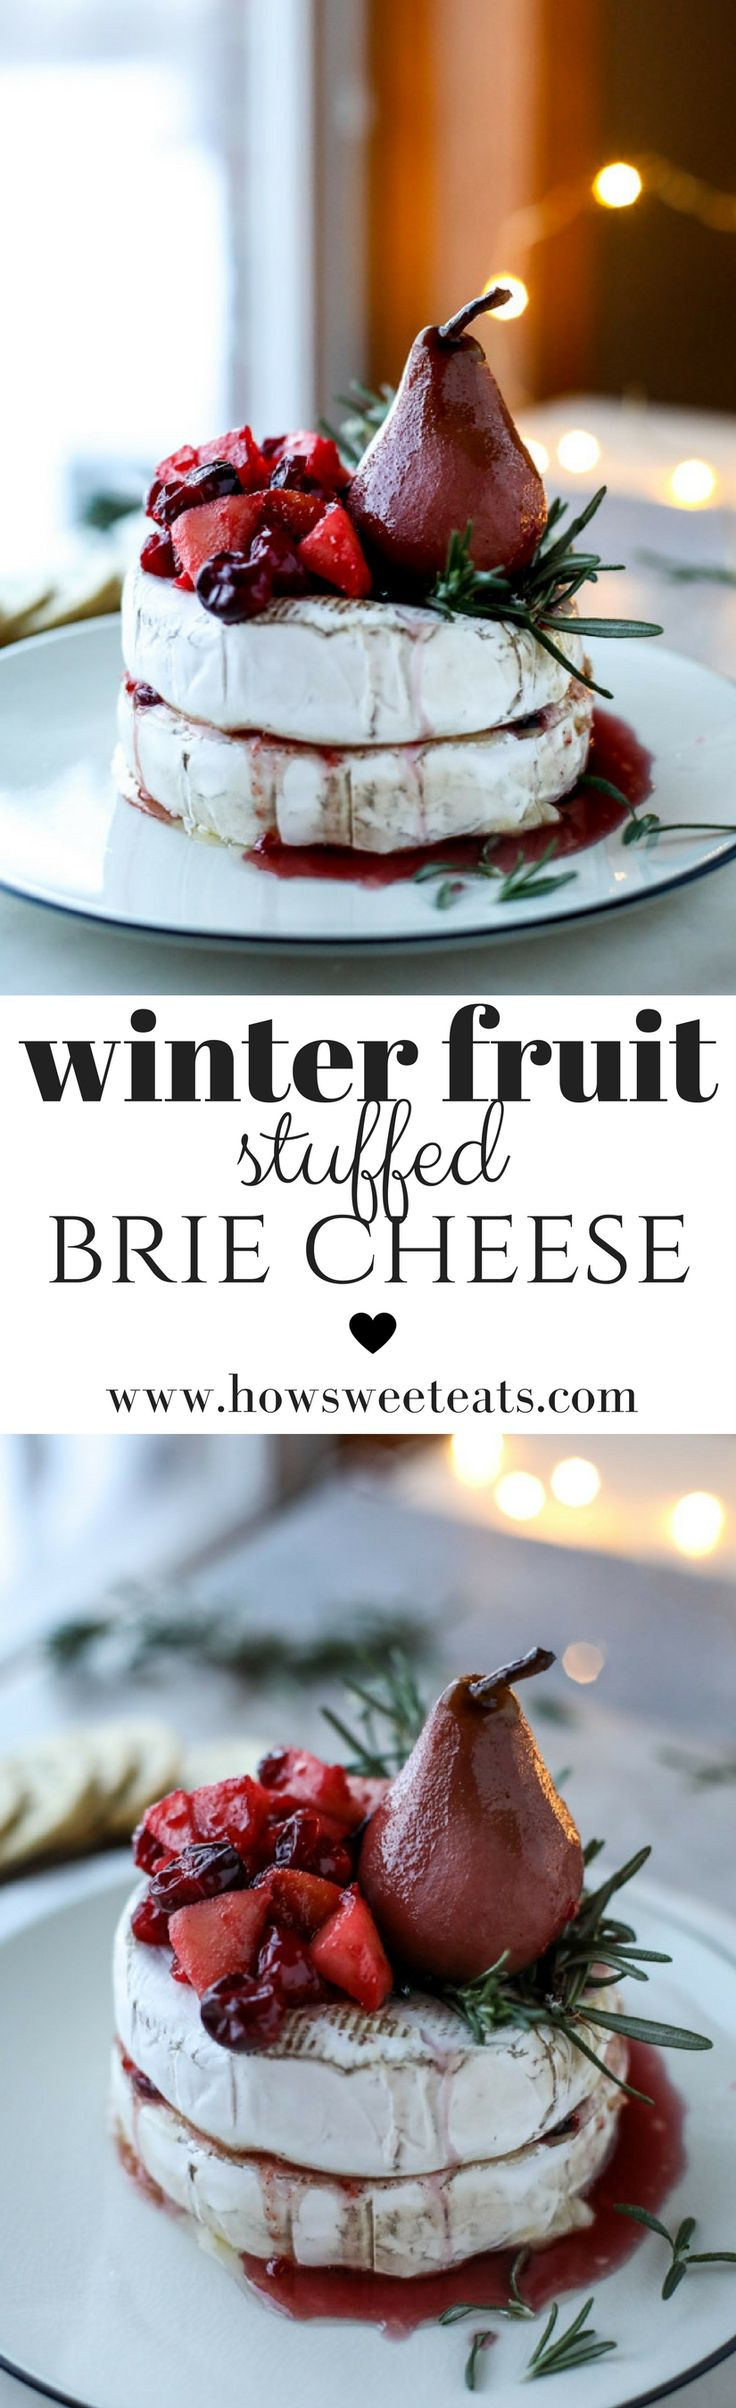 Caramelized Winter Fruit STUFFED Brie Cheese with a Pinot Poached Pear I howsweeteats.com @howsweeteats #christmas #holidays